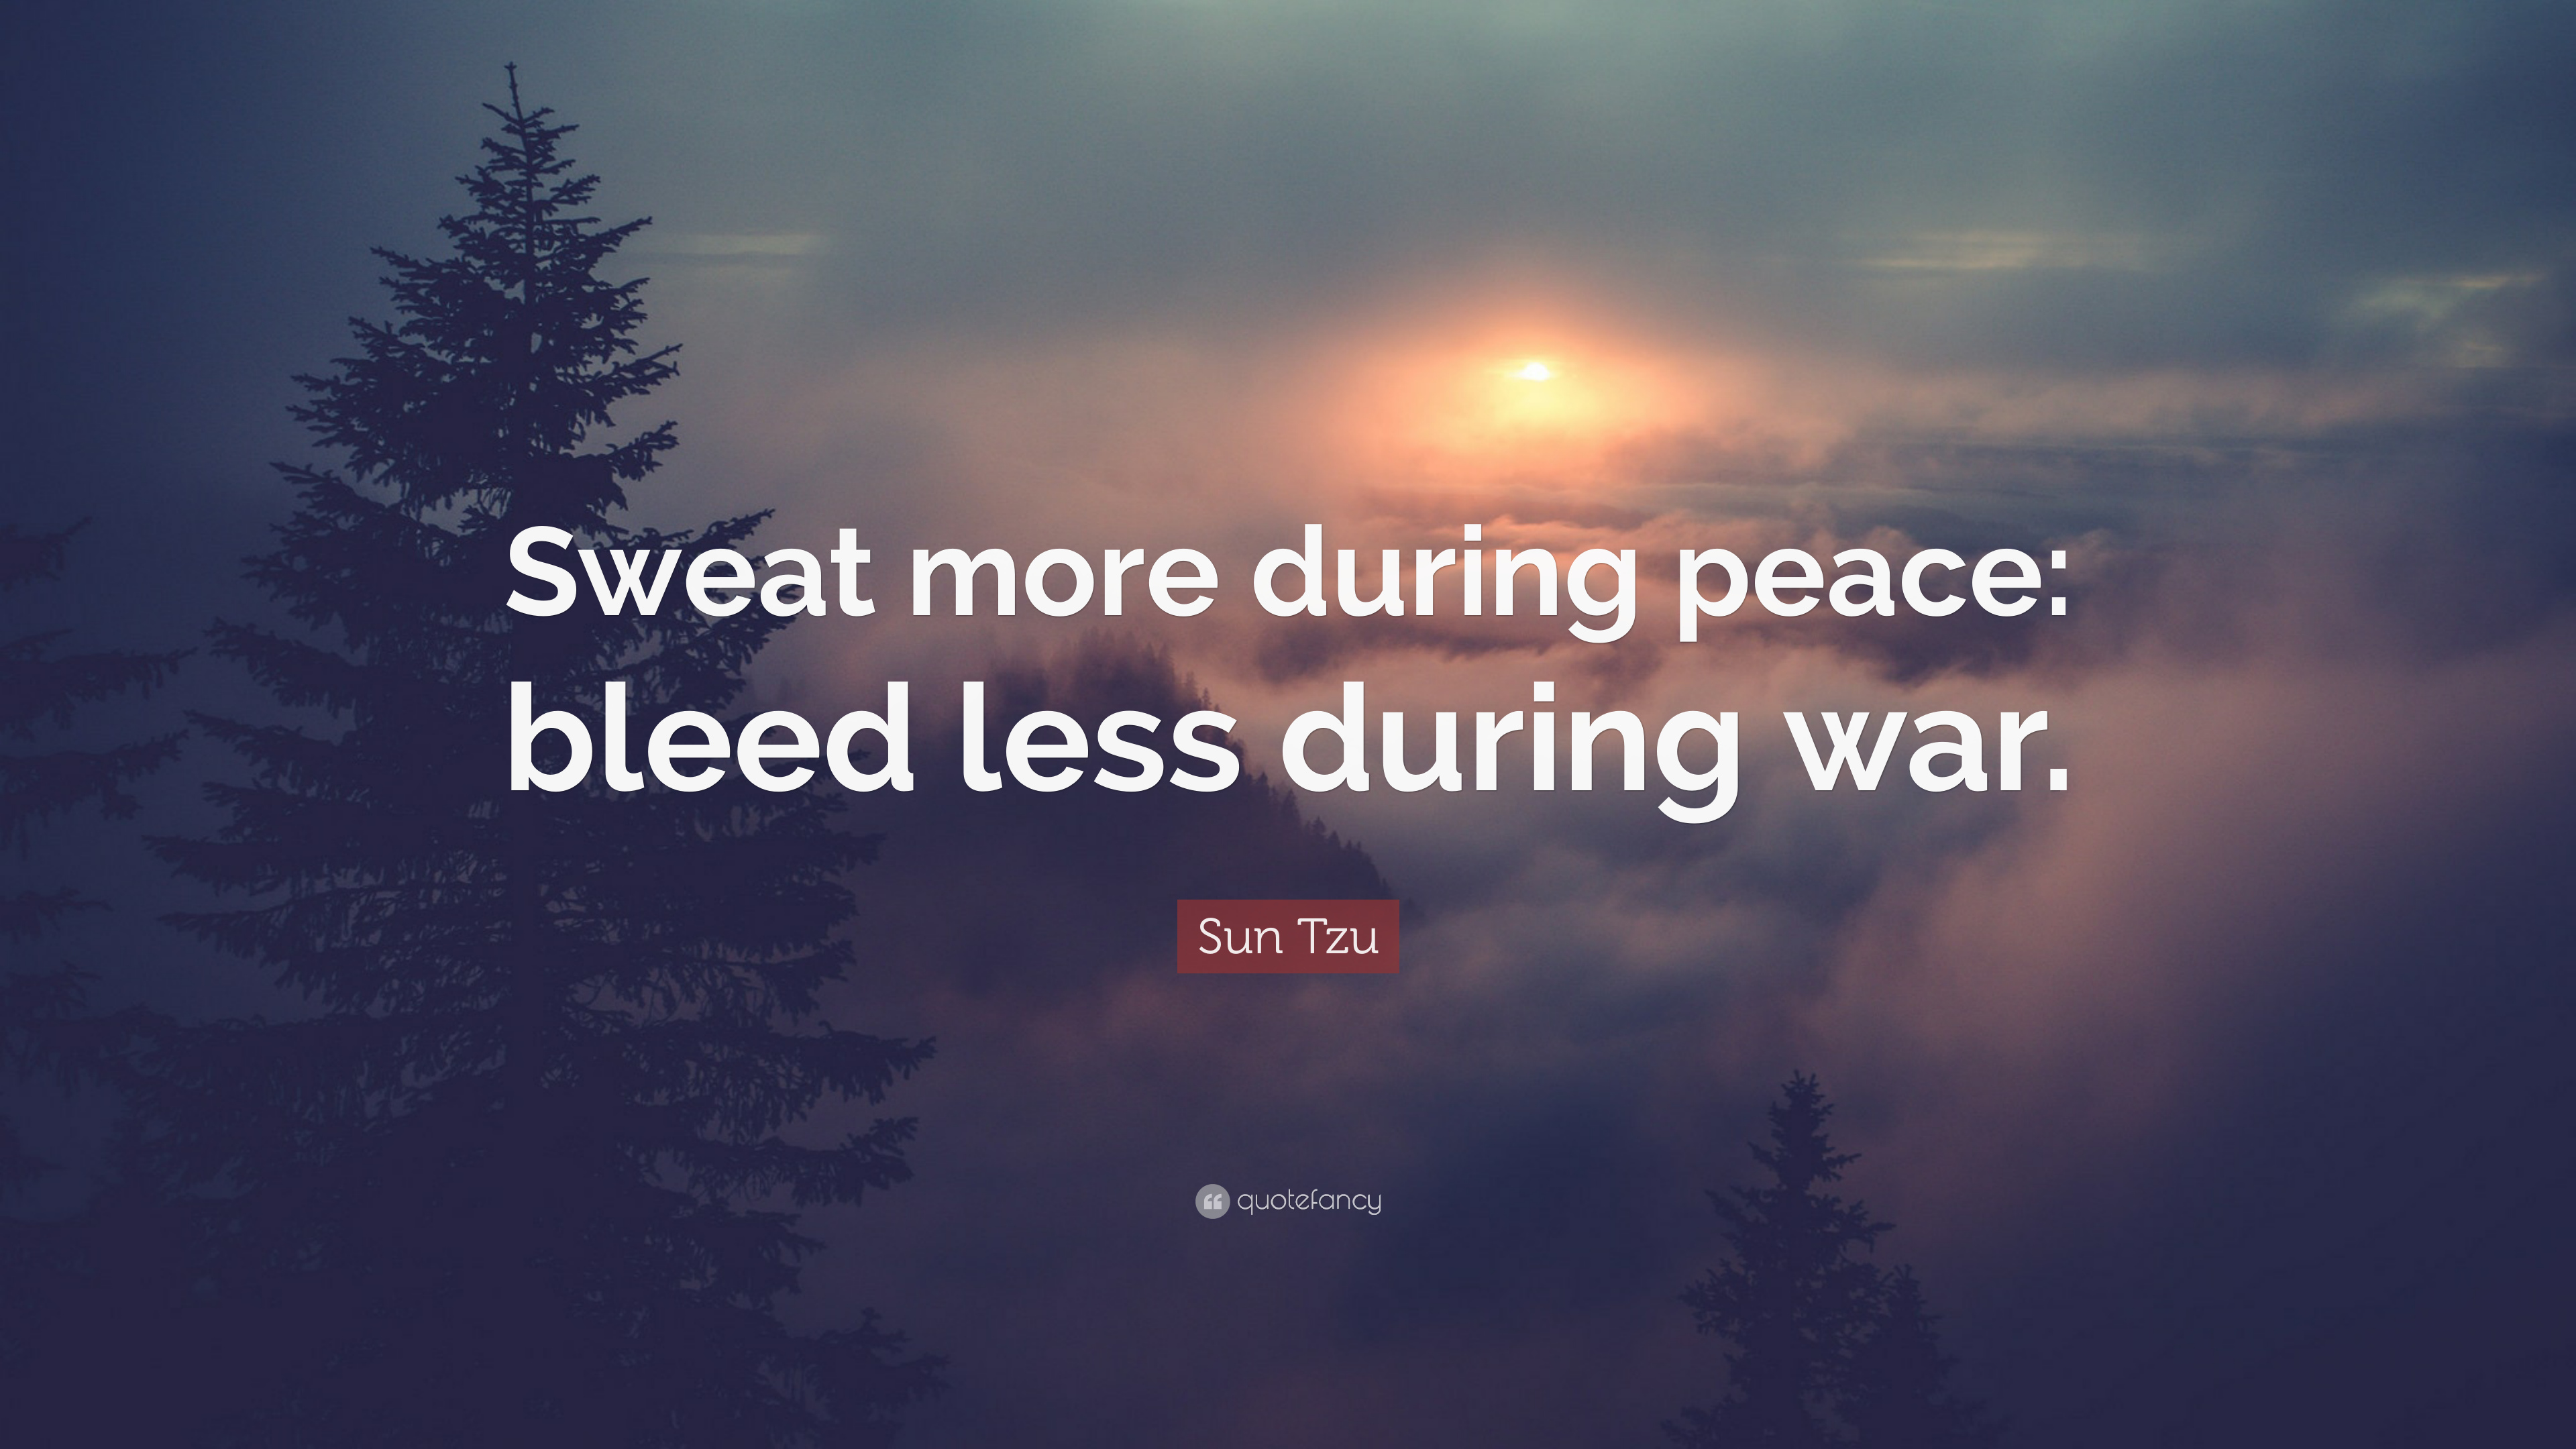 the more you sweat in peace the less you bleed in war